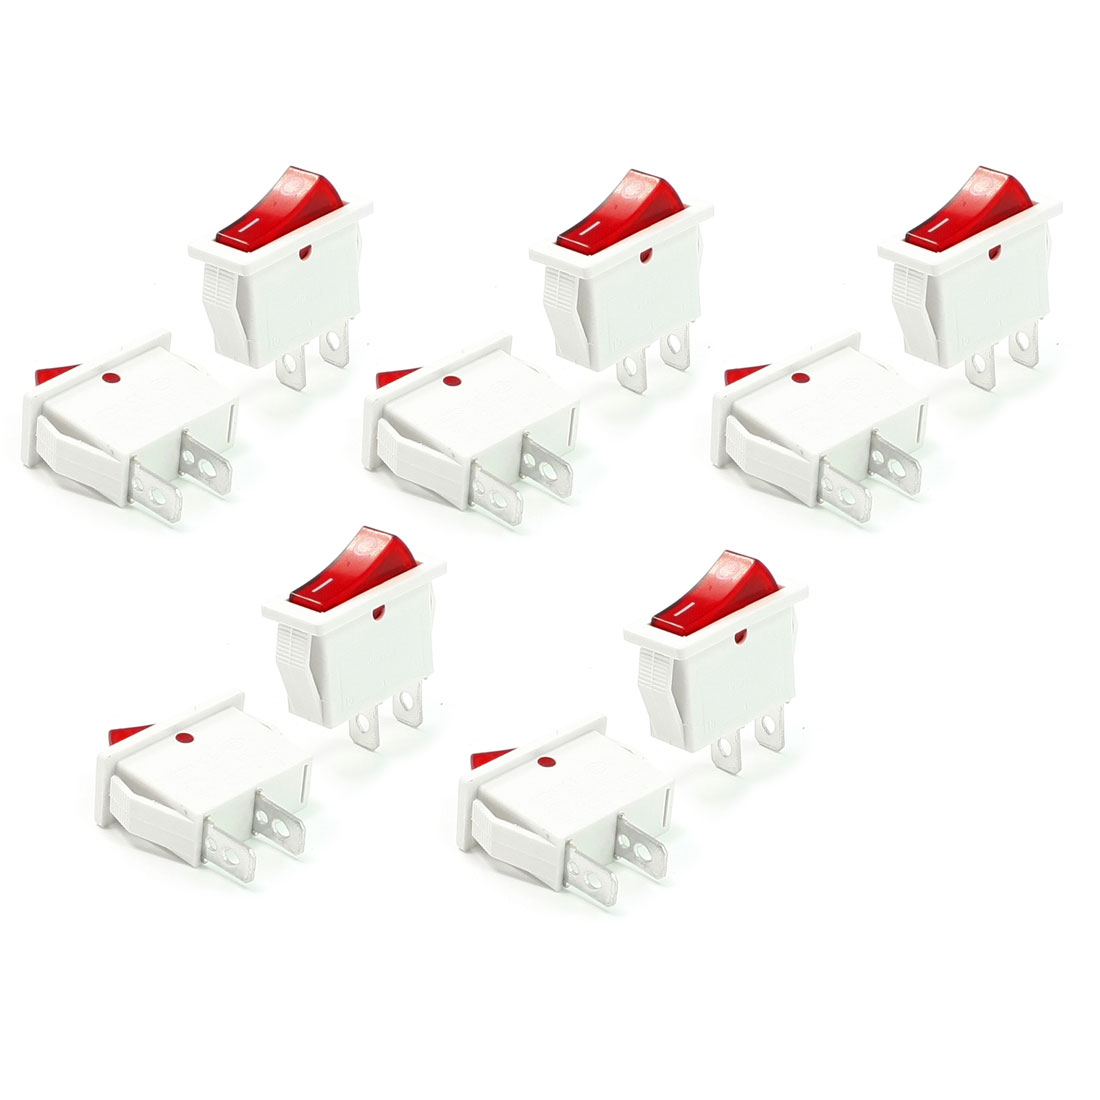 16A 250VAC 20A 125VAC Red Light I/O 2 Position SPST Rocker Switch 10 Pcs